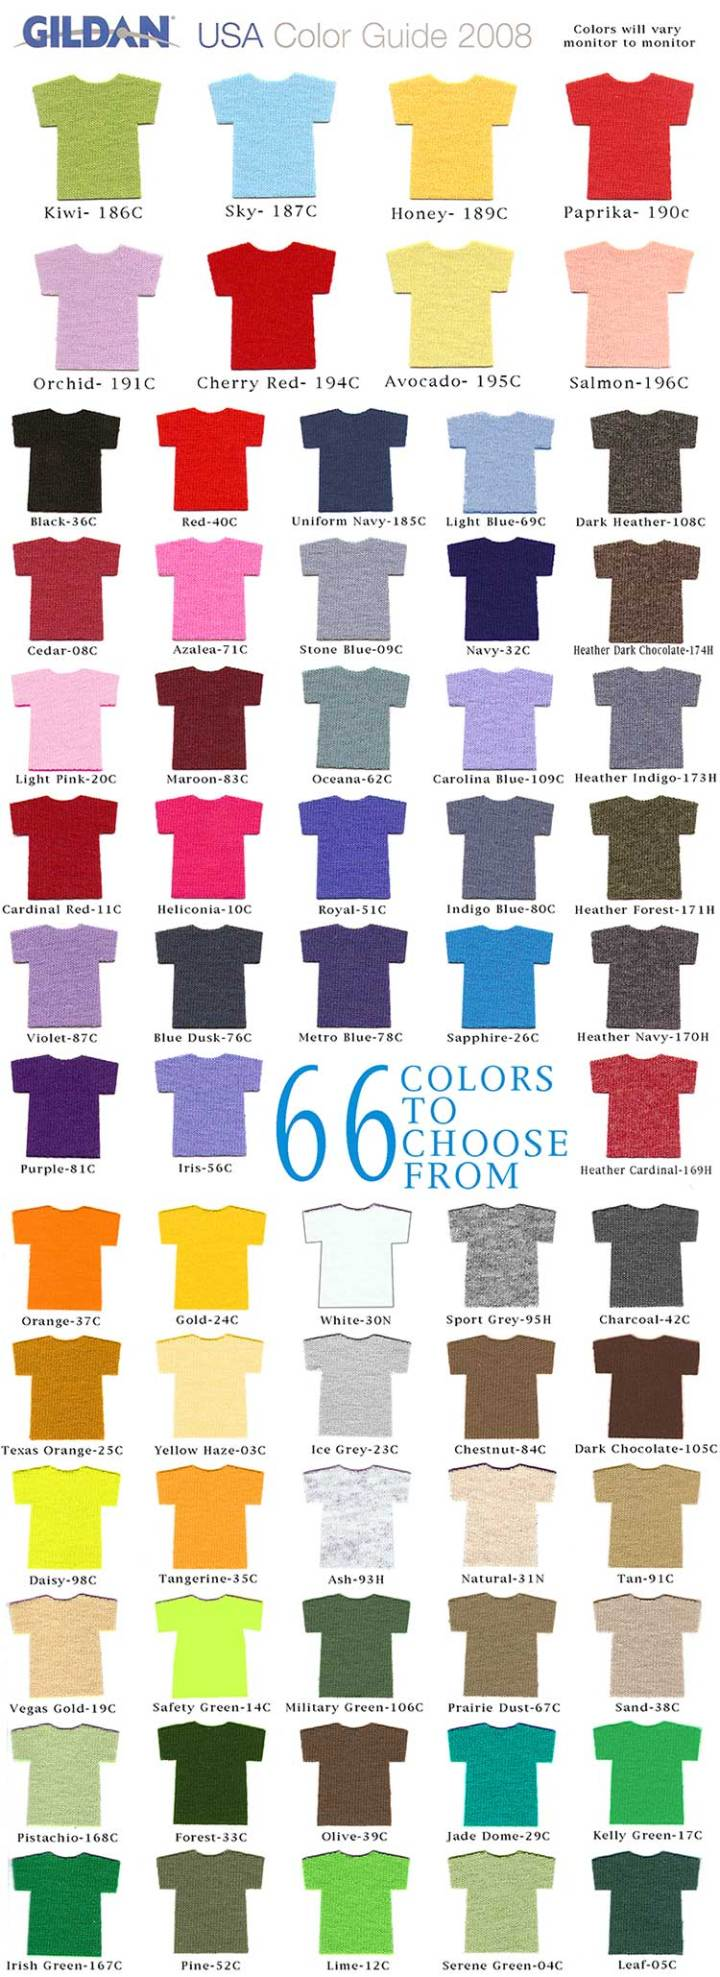 Gildan T Shirt Color Chart 2012 Lauren Goss